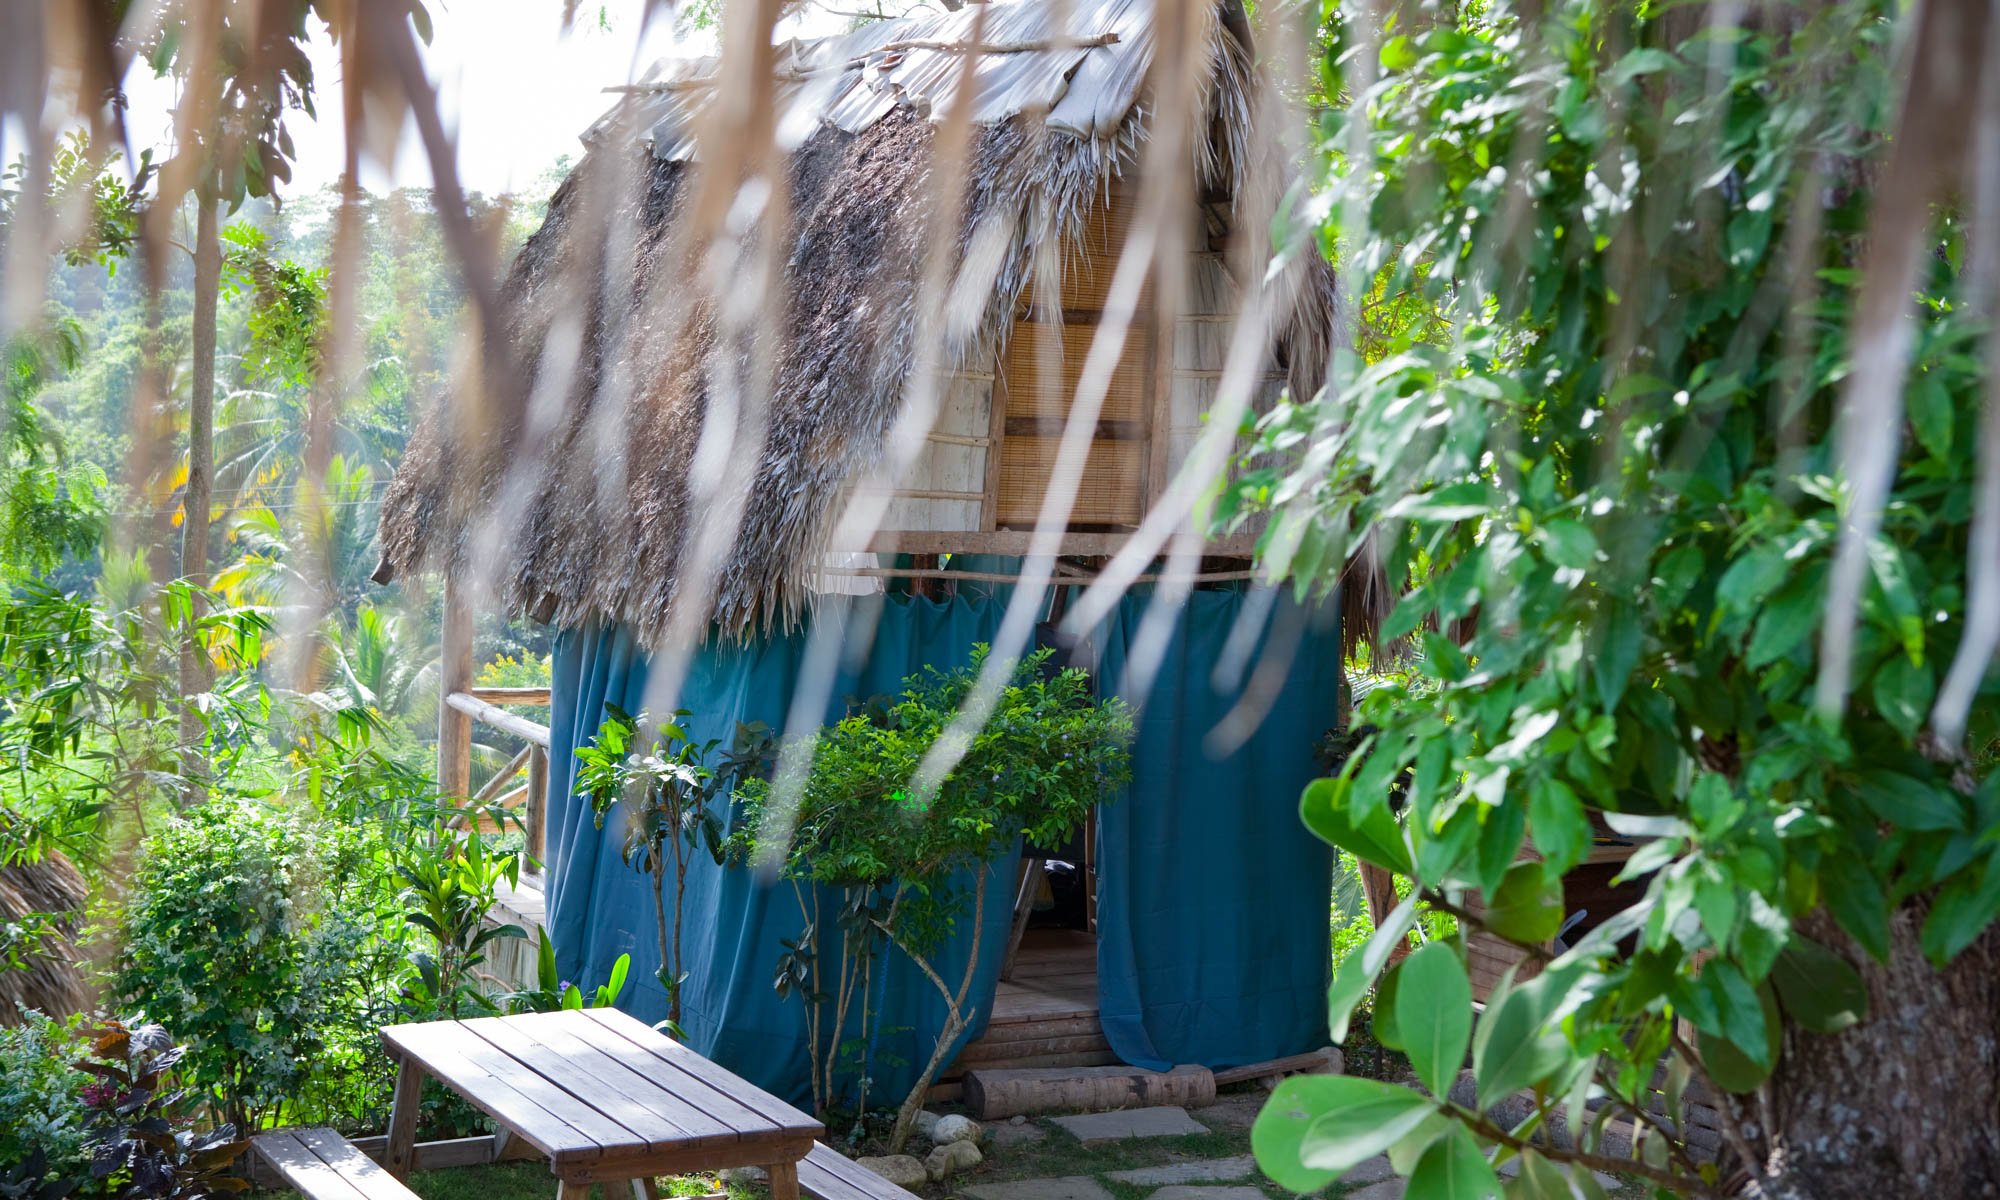 Rustic accommodation with a thatched roof and blue fabric for privacy with green foliage and a picnic table